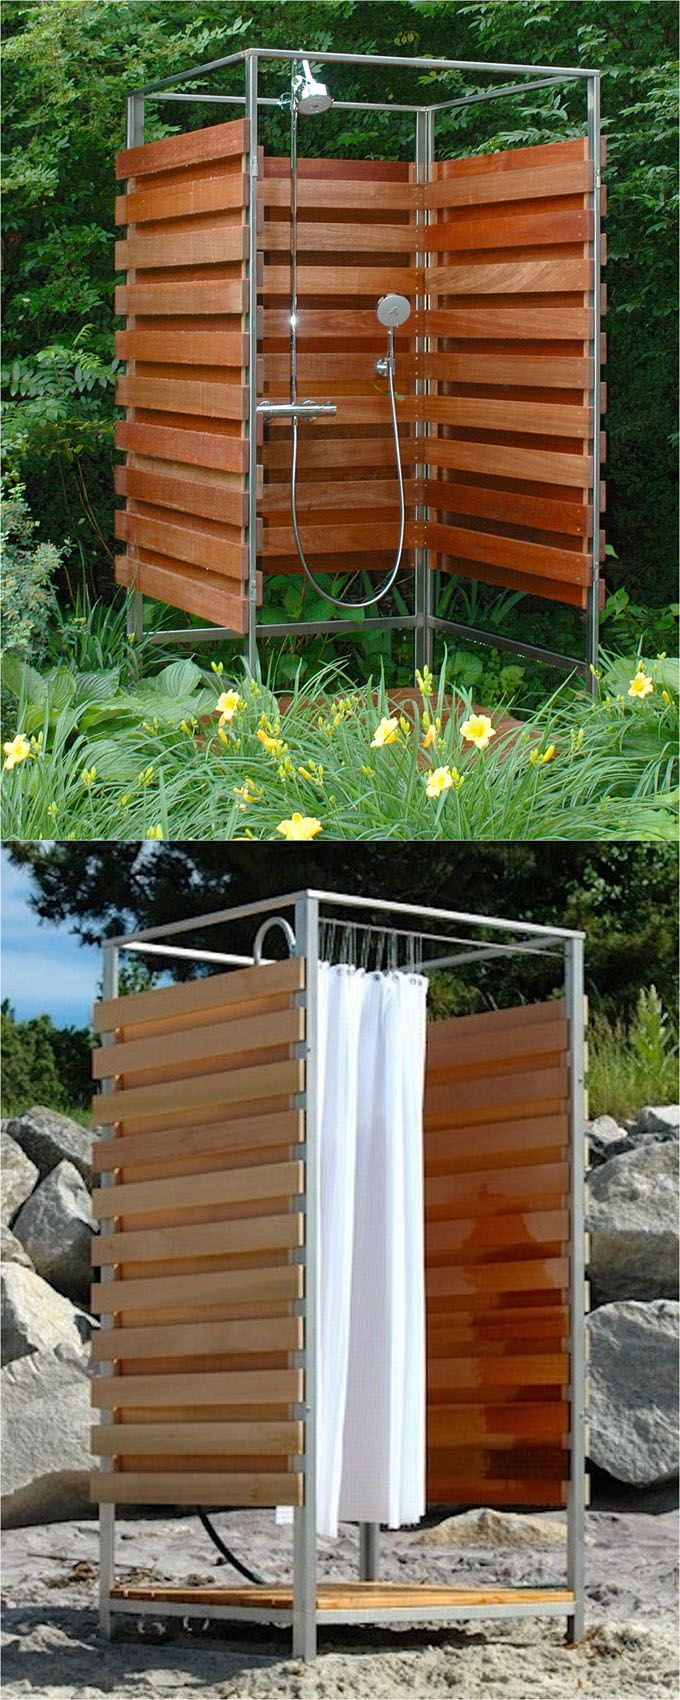 32 amazing outdoor showers: how to build enclosures with simple materials, best outdoor shower fixtures, creative designs and more! - apieceofrainbow.com